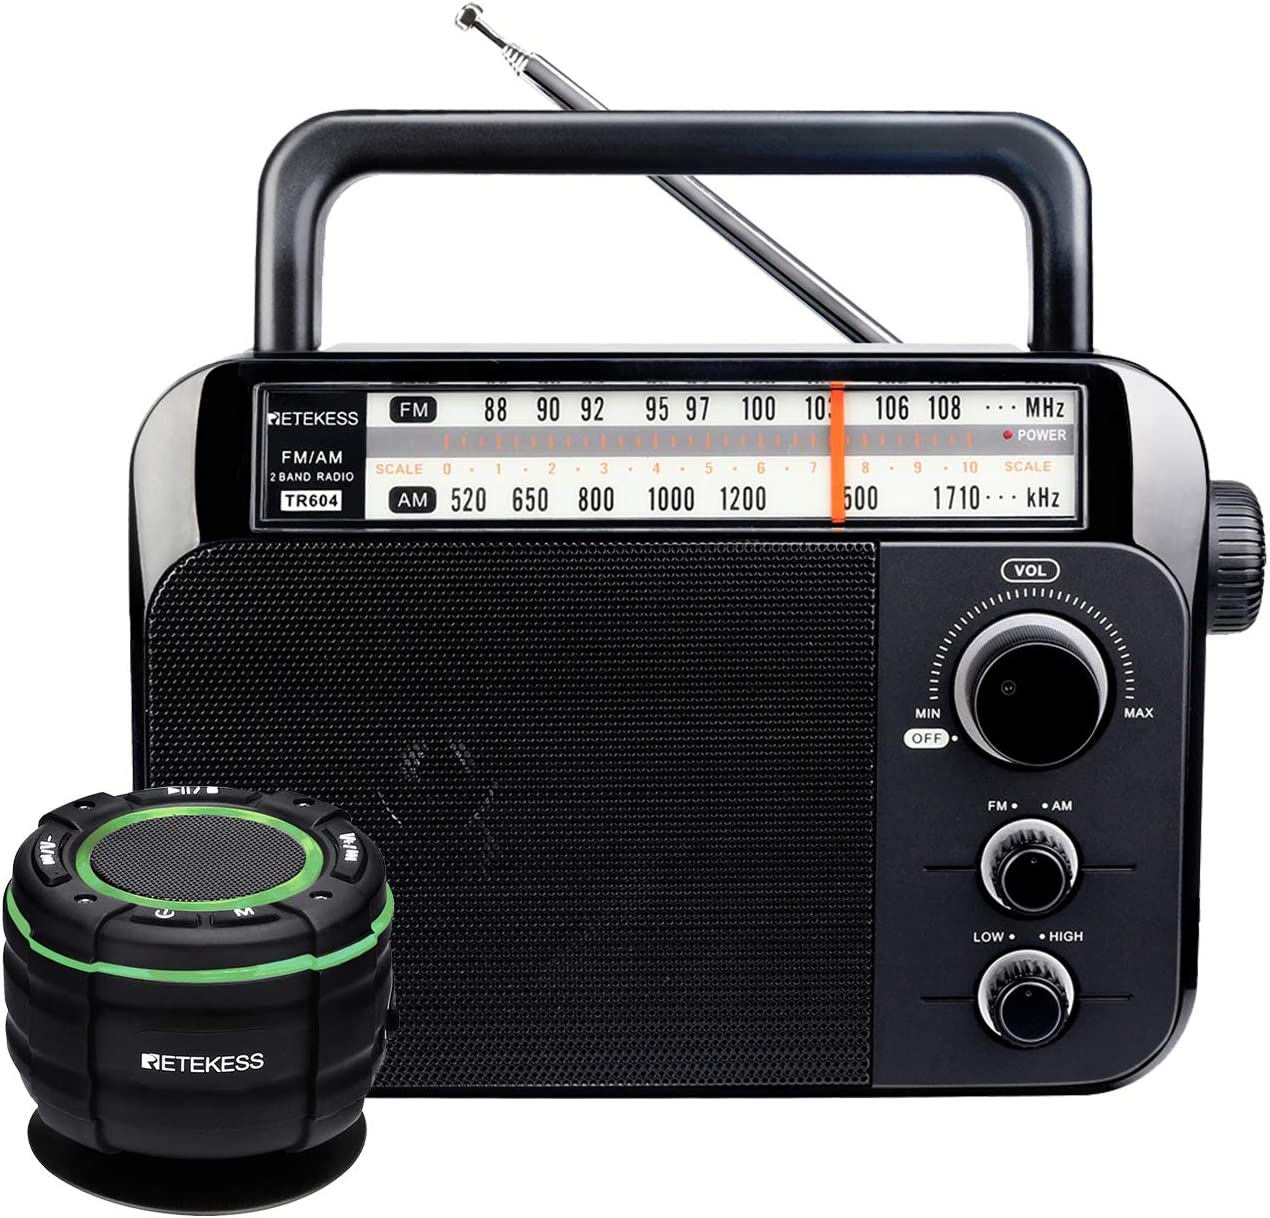 Retekess TR604 AM FM Radio Portable, Tabletop Radio Powered by AC or D Battery, and TR622 Waterproof Bluetooth Shower Speaker, FM Shower Radio, Loud Volum Radio for Home and Outdoor